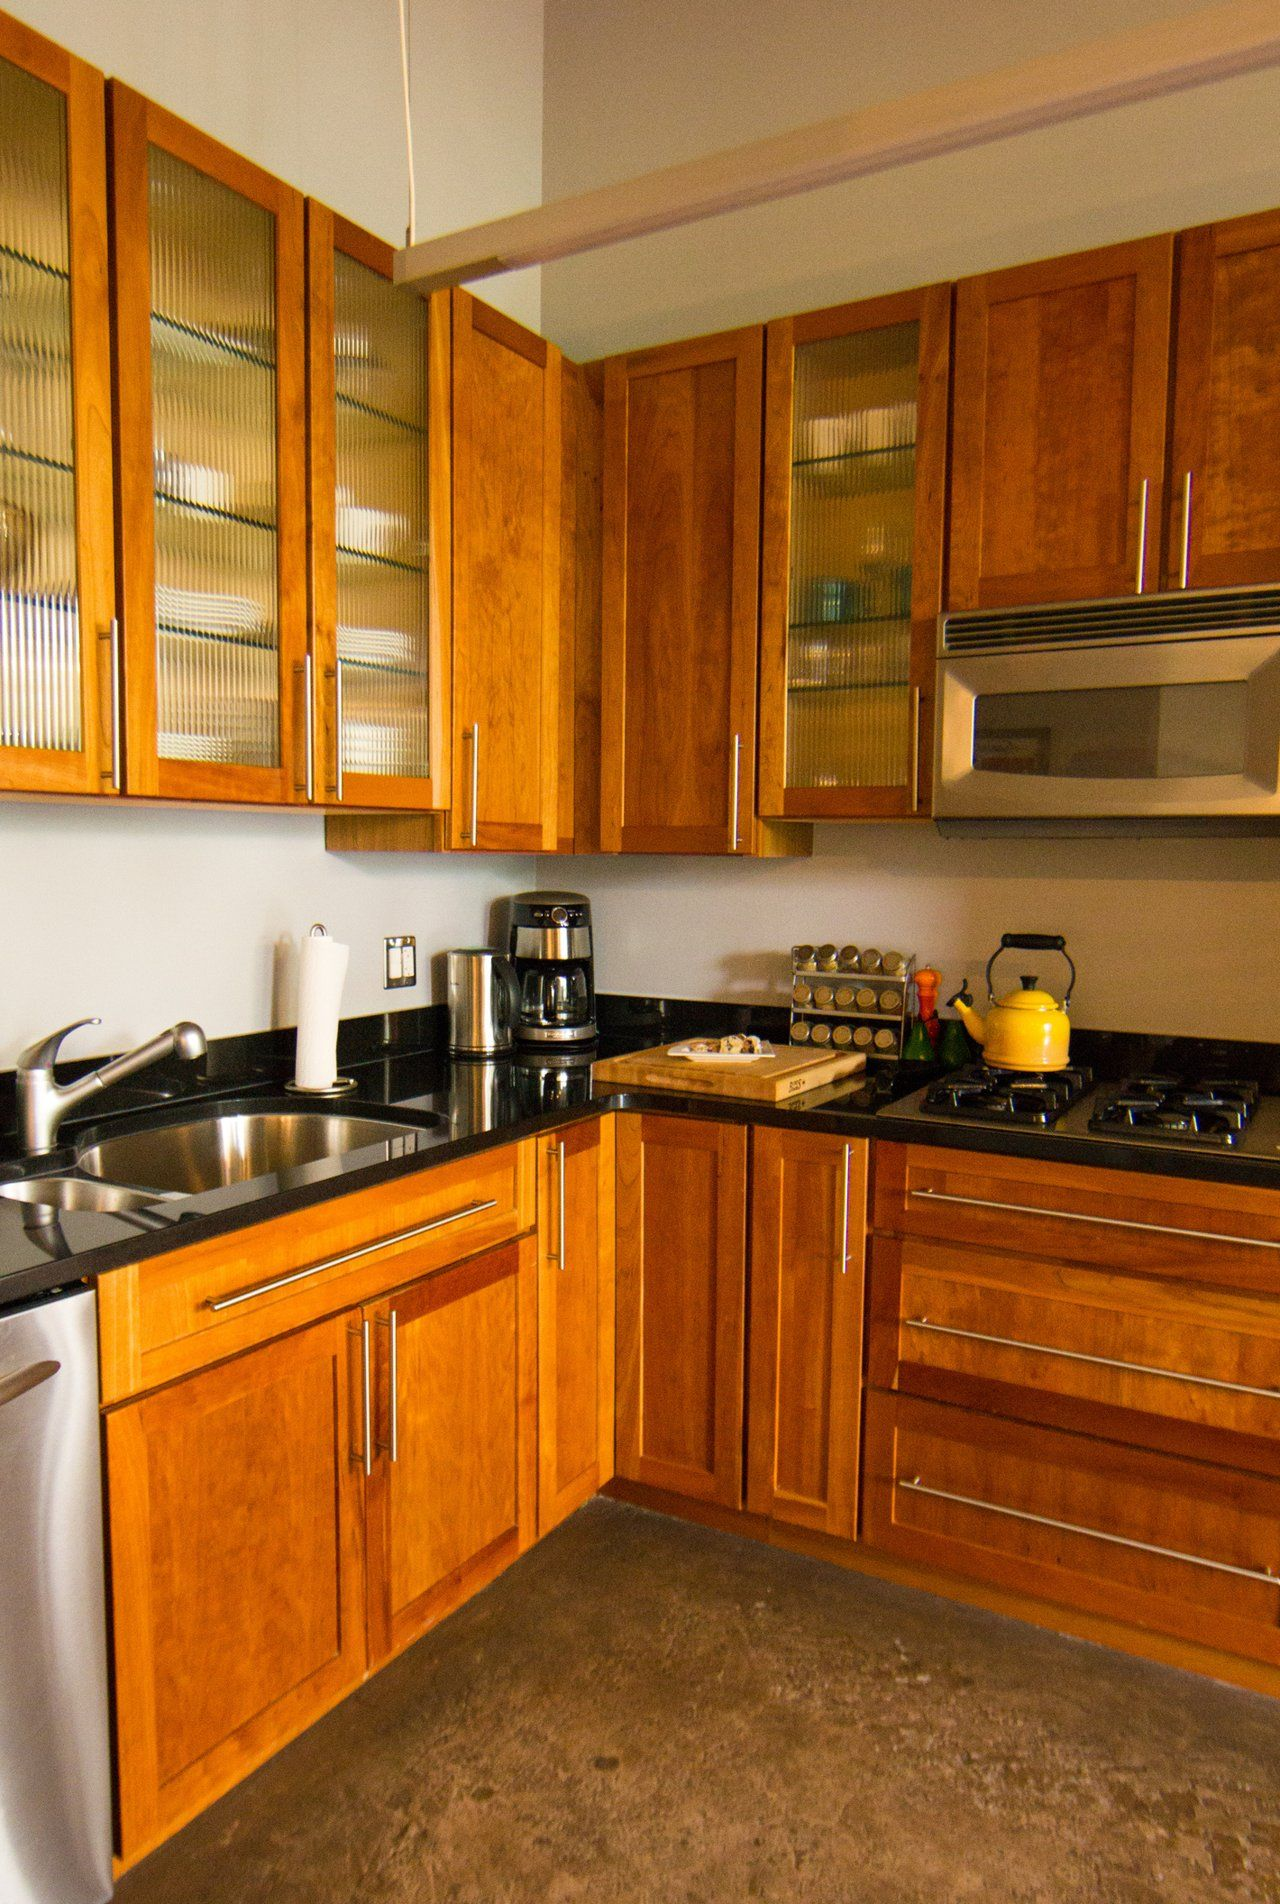 Kitchen Cabinets Factory Seconds With The Rev A Shelf Appliance Lift It Only Takes Seconds To Raise Your Heavy Duty Mixer And O Kitchen Remodel Small Kitchen Remodel Layout Diy Kitchen